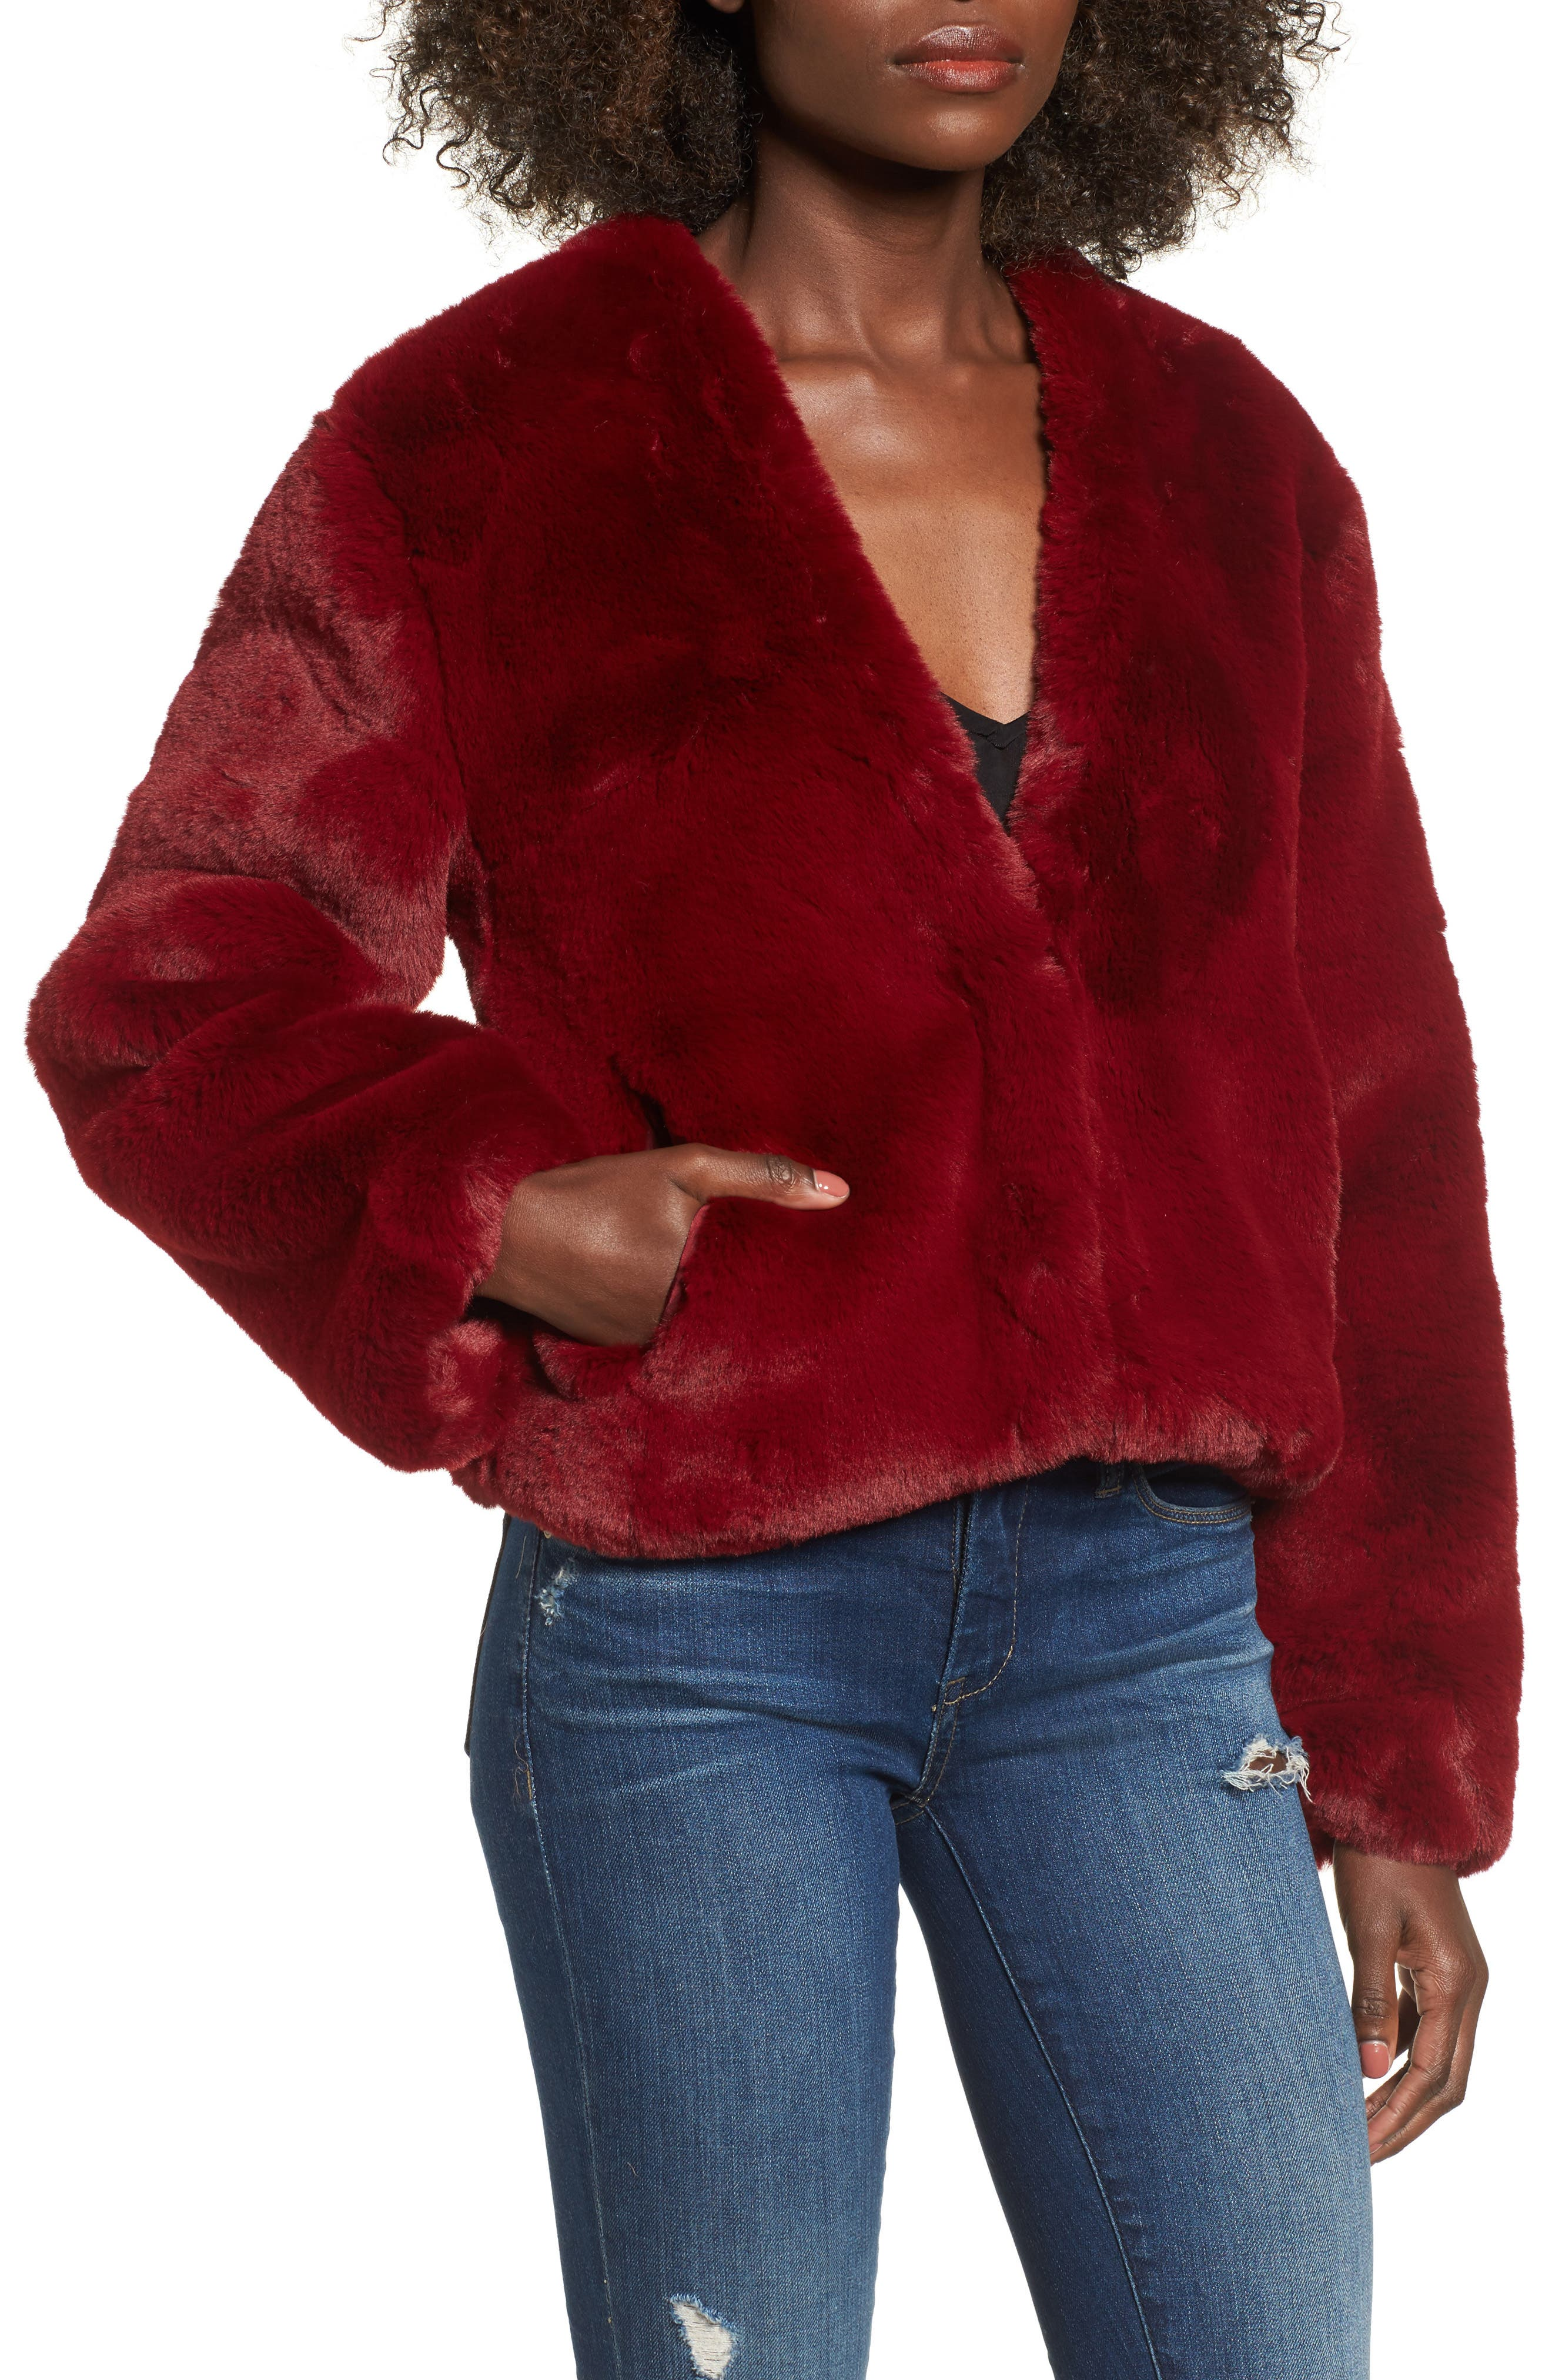 Lonely Hearts Faux Fur Jacket,                             Alternate thumbnail 4, color,                             Ruby